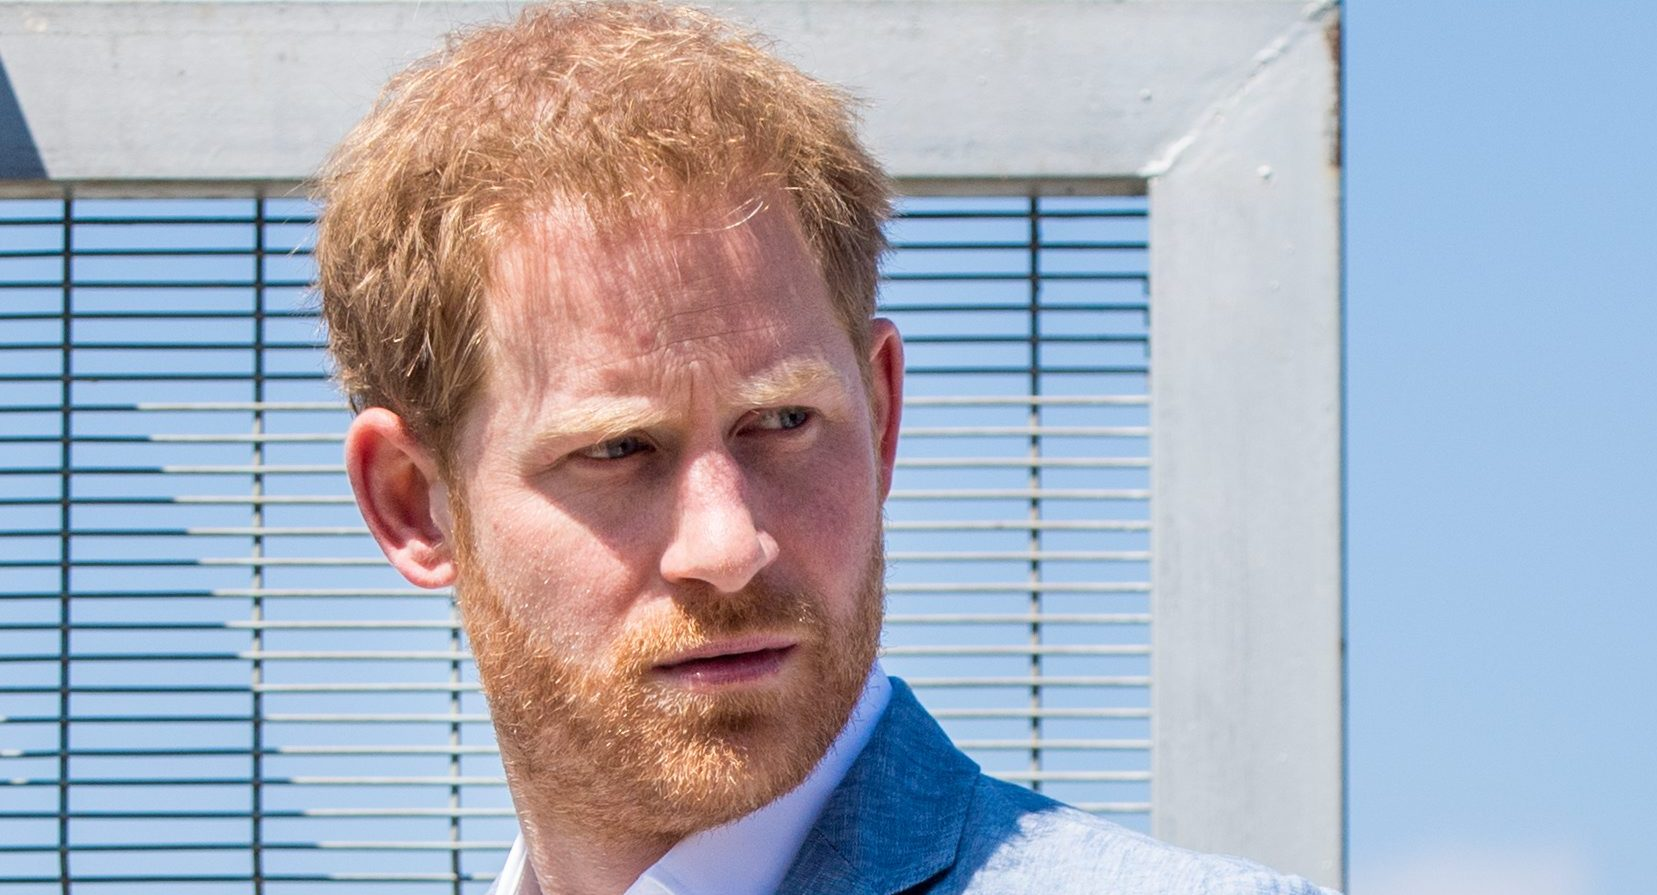 Prince Harry likens his mother's death to a 'festering wound' as he opens up in new documentary